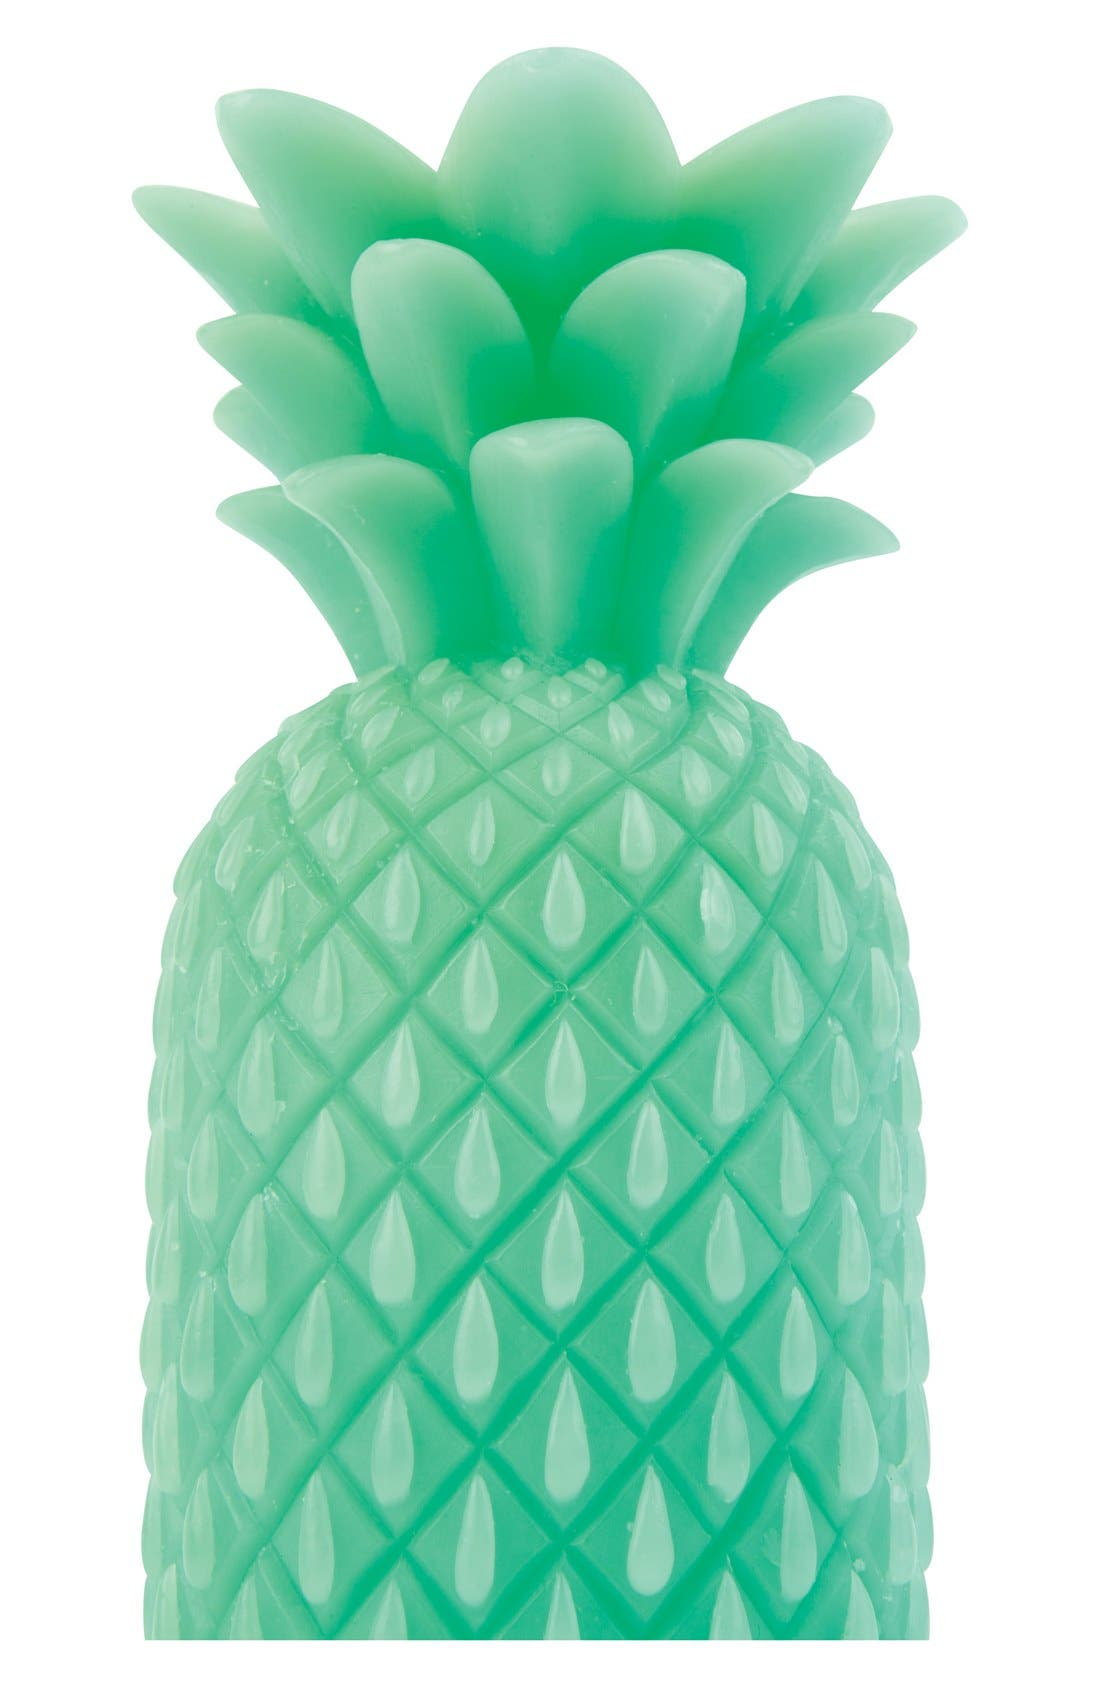 Pineapple Candle,                             Alternate thumbnail 6, color,                             440